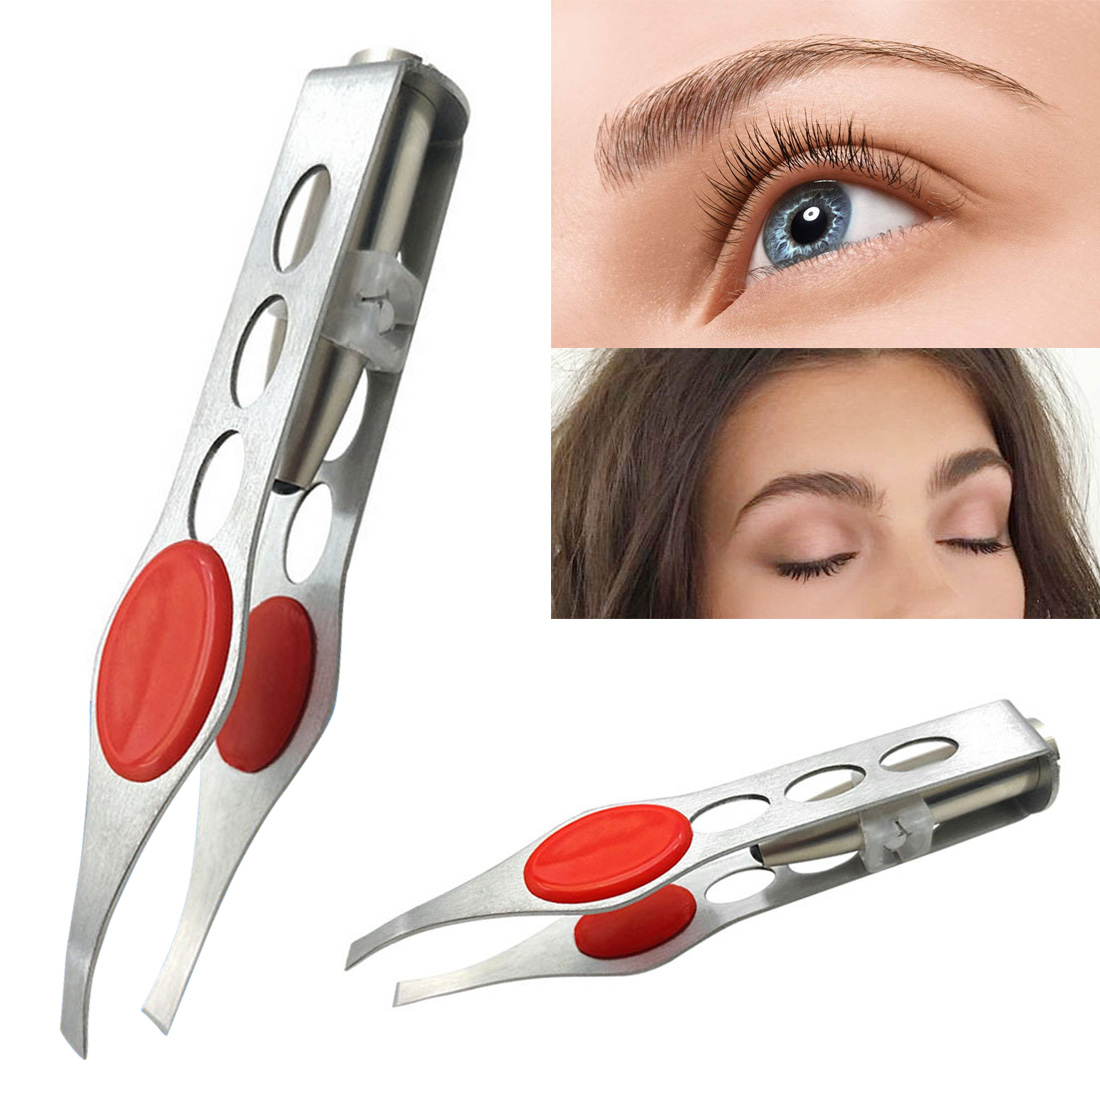 Stainless Steel Eyebrow Tweezers Four-hole LED Light Eyebrow Clip/Hair Removal Tweezer/ Face Hair Remover